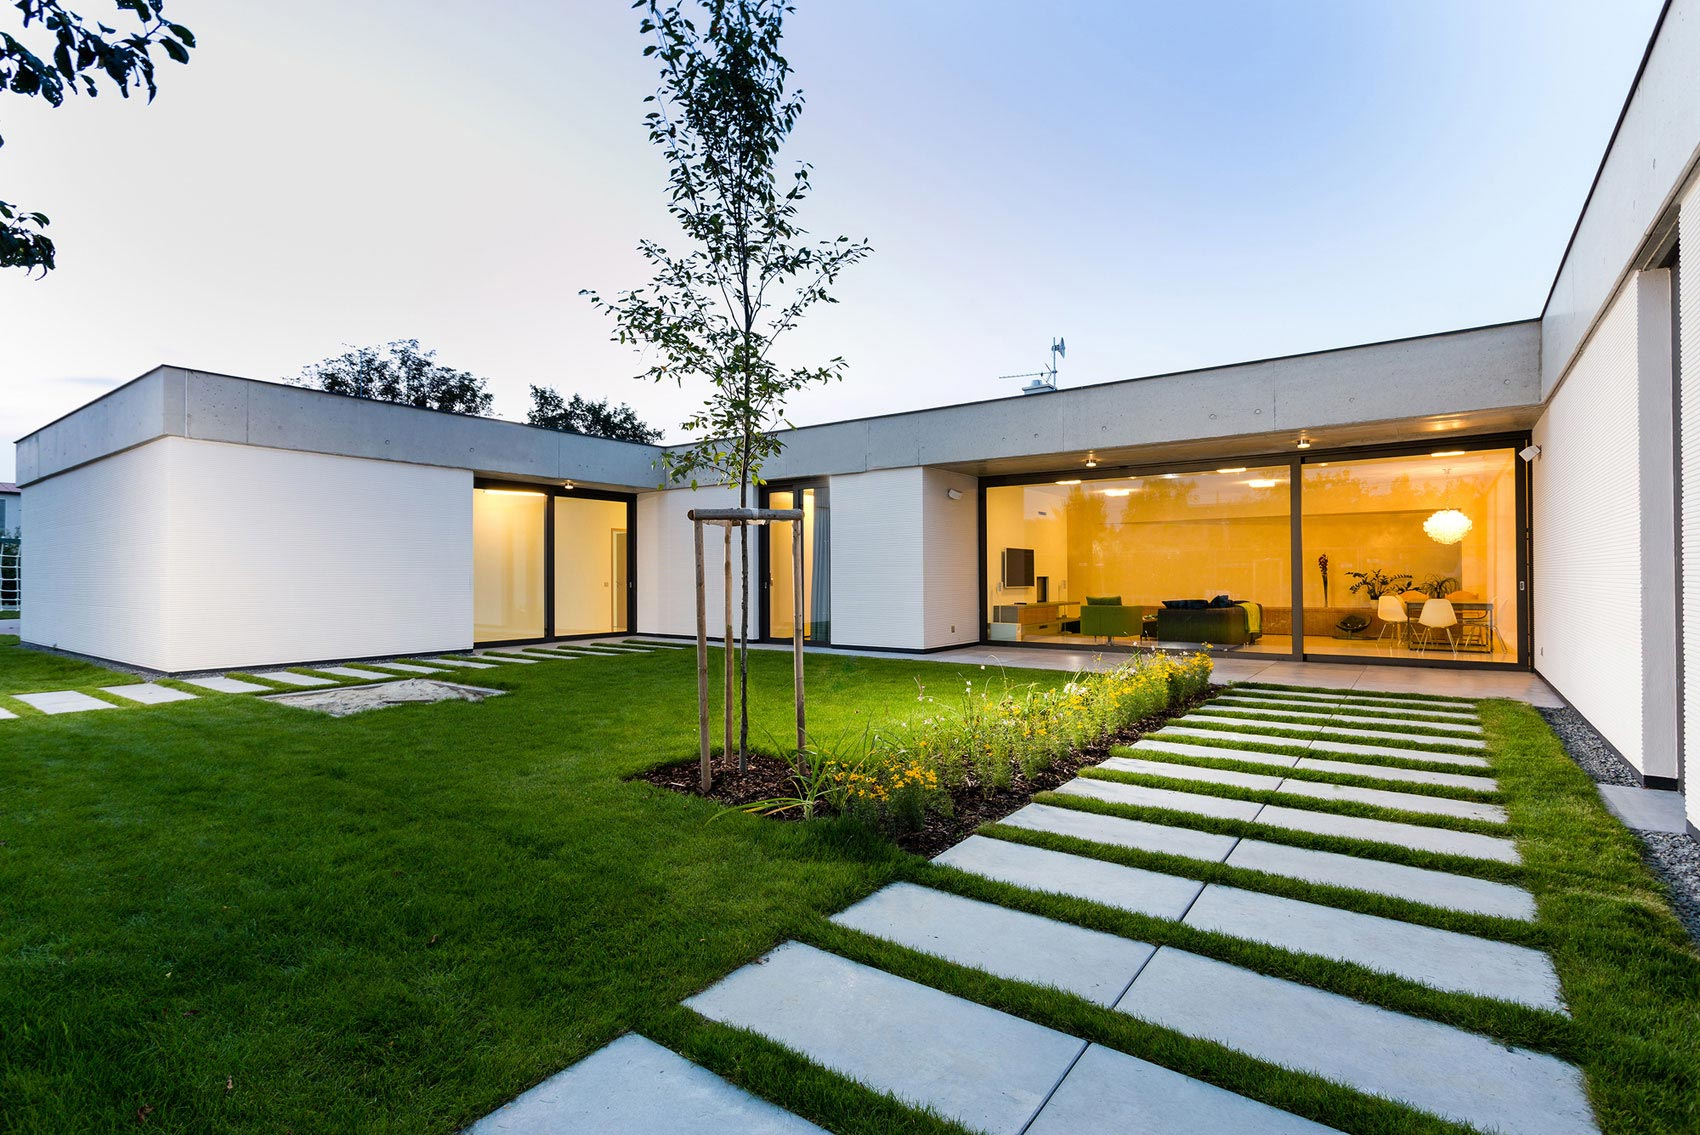 One story modern home in olomouc slavon n by jvarchitekt for One story modern house